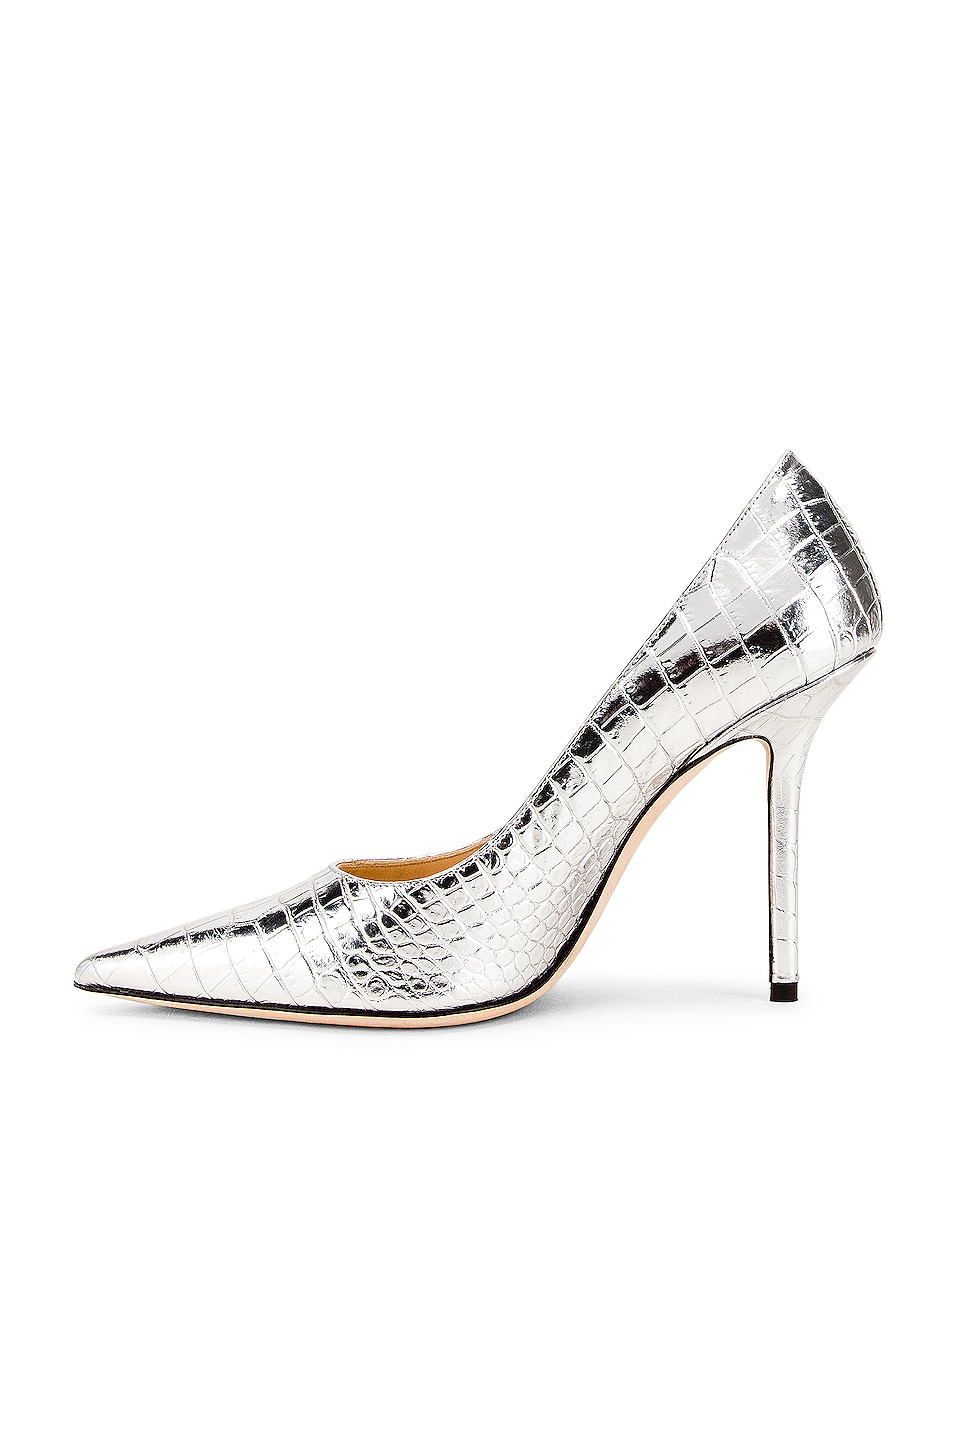 Image 5 of Jimmy Choo Love 100 Metallic Croc Embossed Leather Heel in Silver